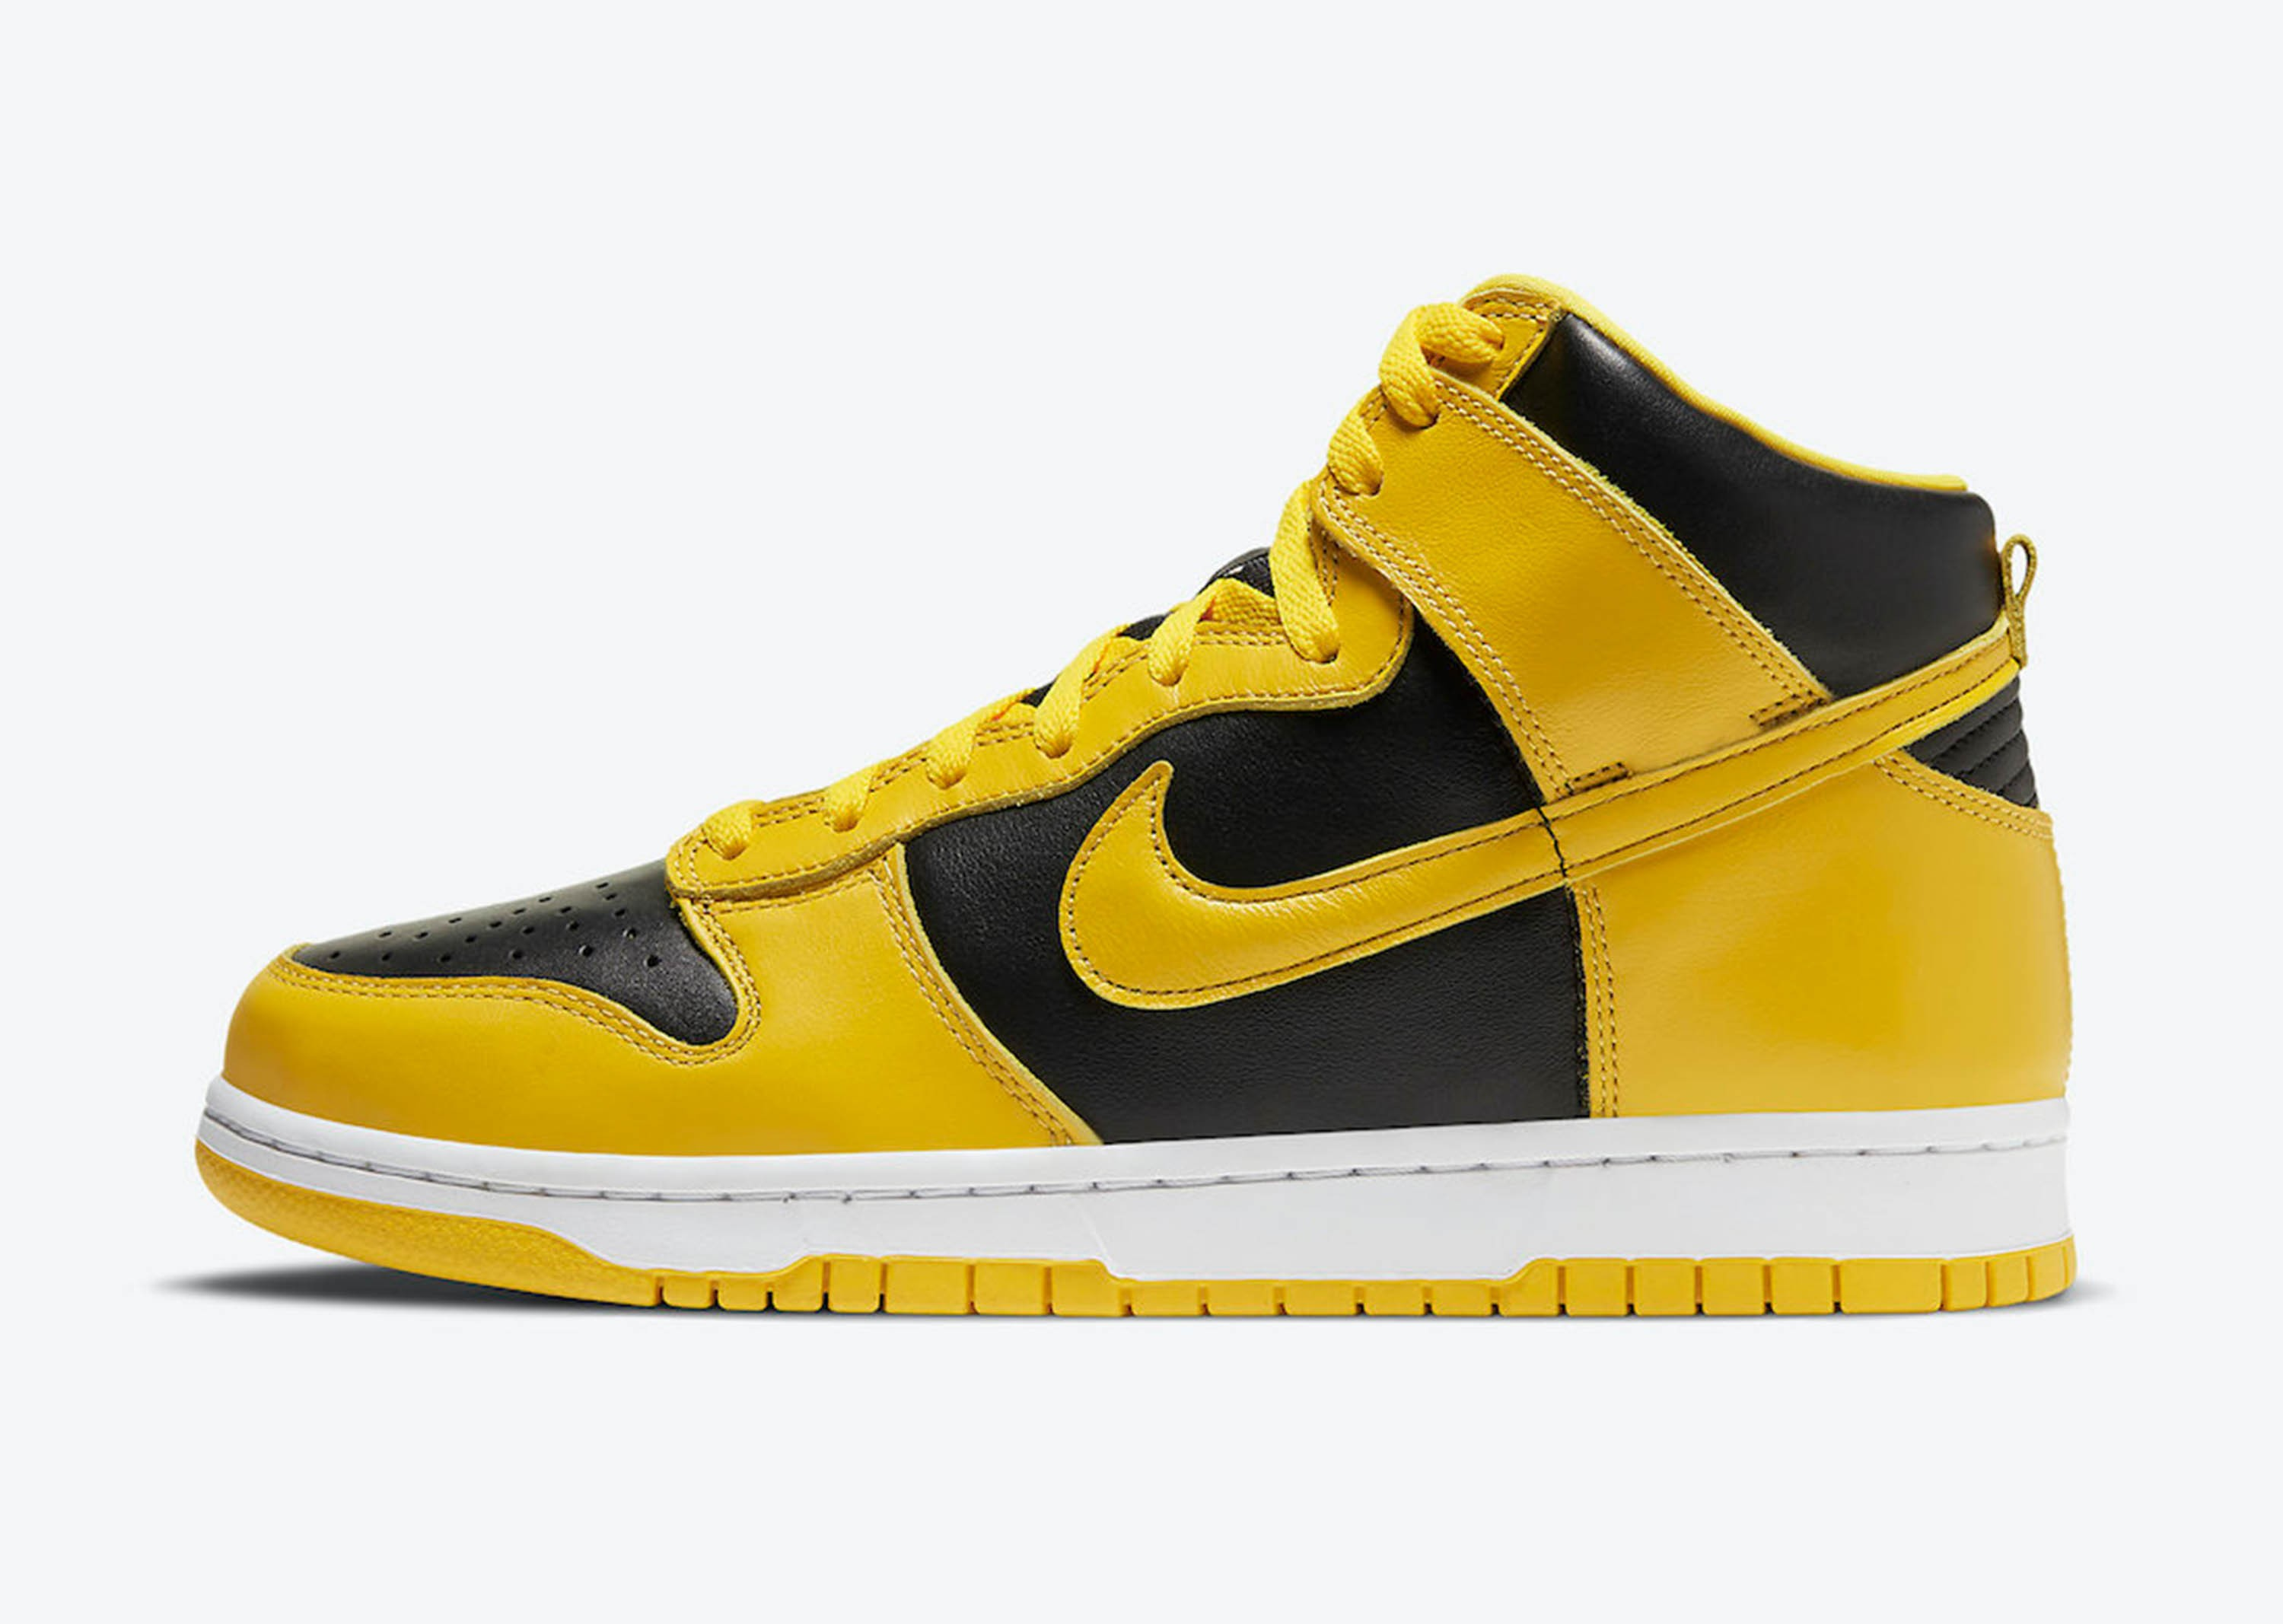 Dunk_High_Varsity_Maize_0001_Nike-Dunk-High-Varsity-Maize-CZ8149-002-Release-Date-Price